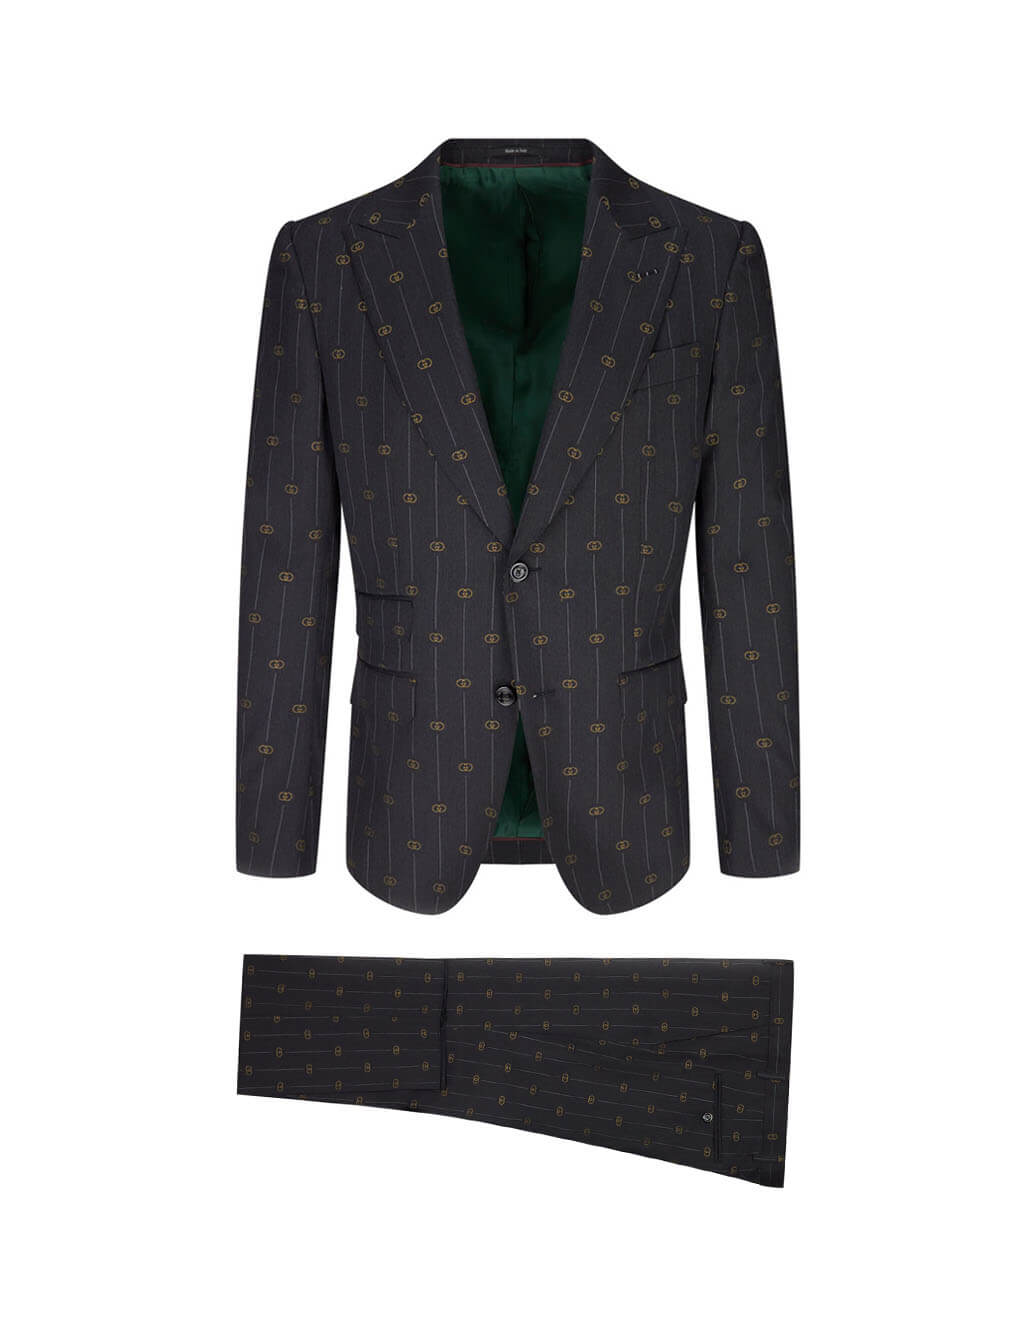 Gucci Grey Heritage Interlocking G Stripe Suit 630155 ZAD99 1012